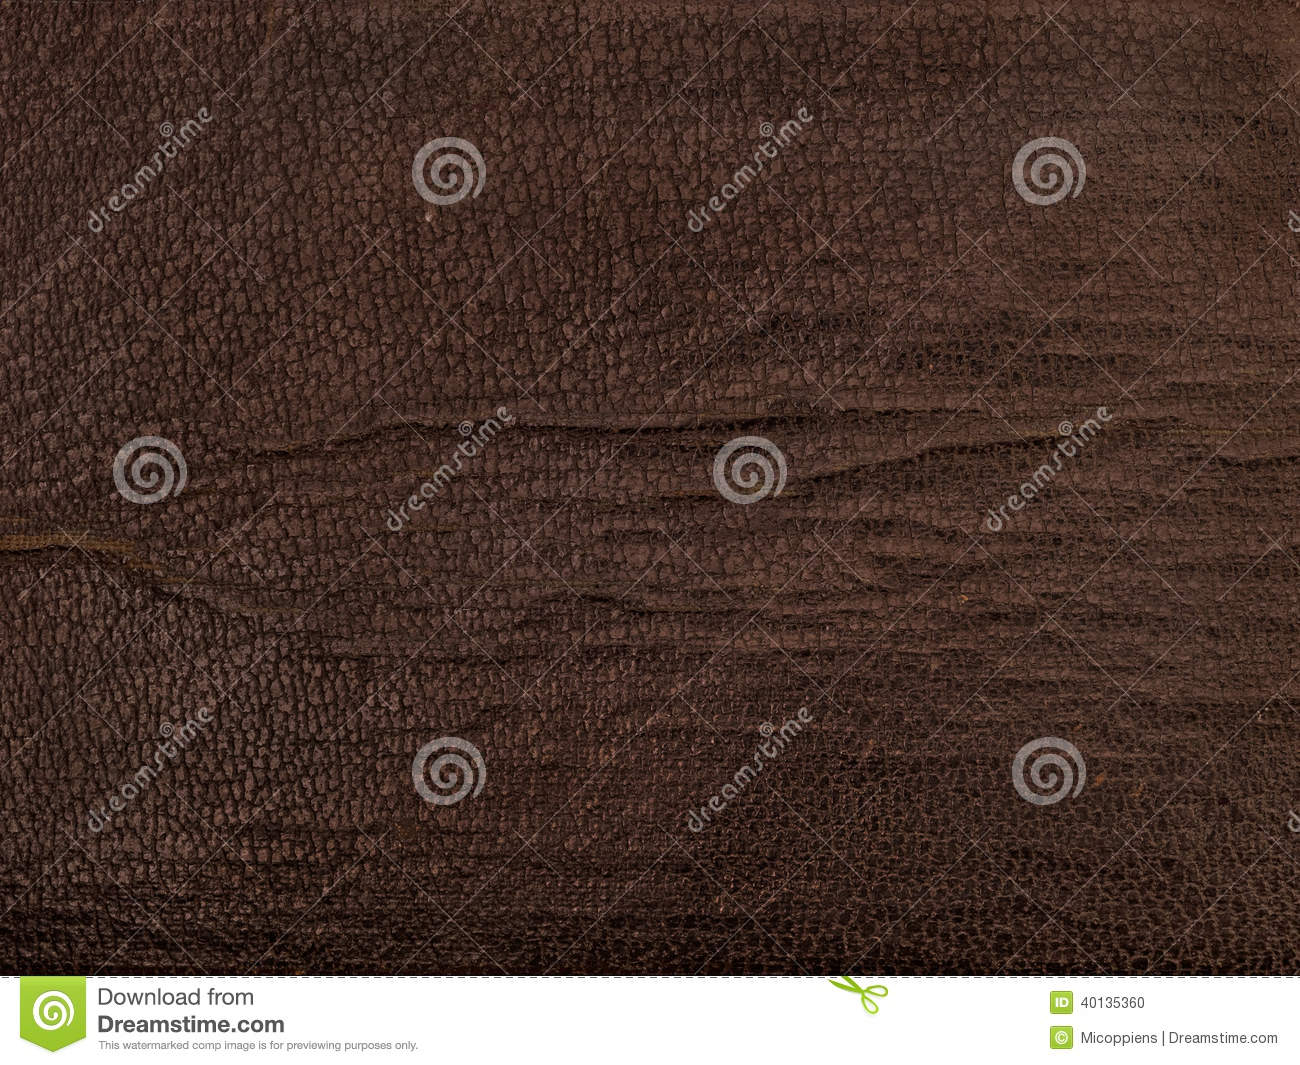 How To Make A Book Cover Look Old And Worn : Old brown fabric leather look